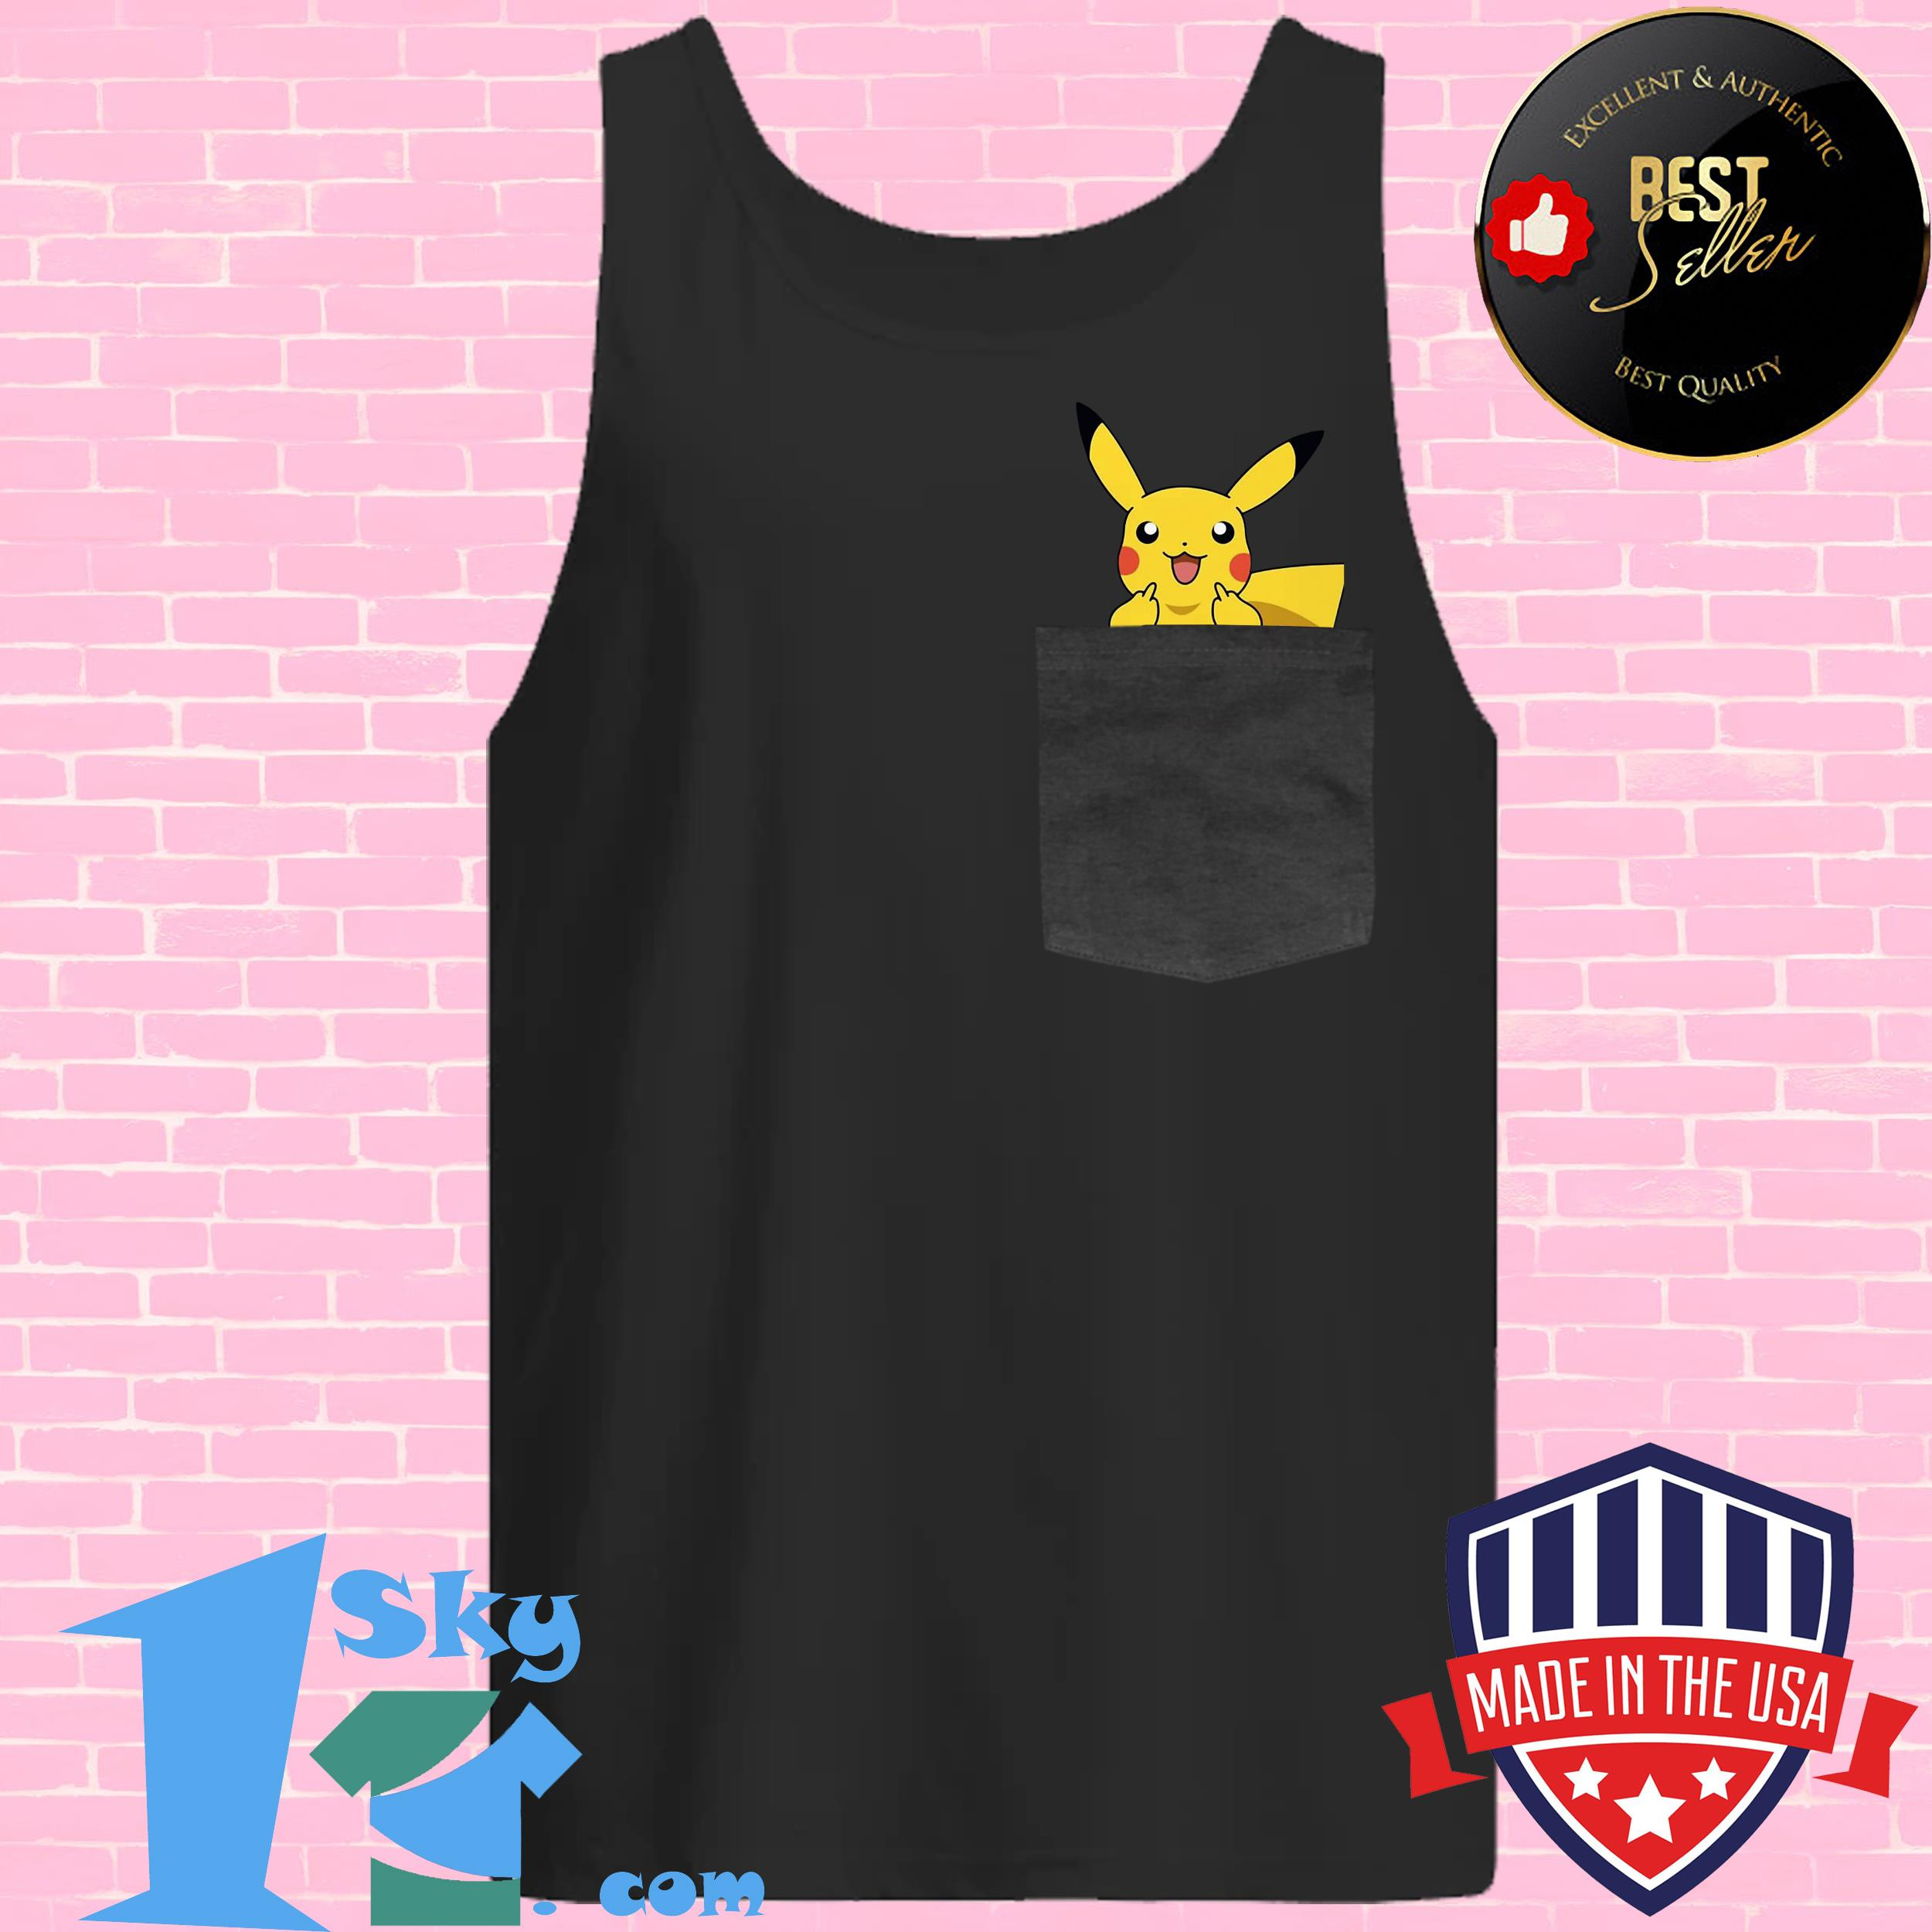 official surprised pikachu pocket cute tank top - Official Surprised Pikachu Pocket Cute shirt